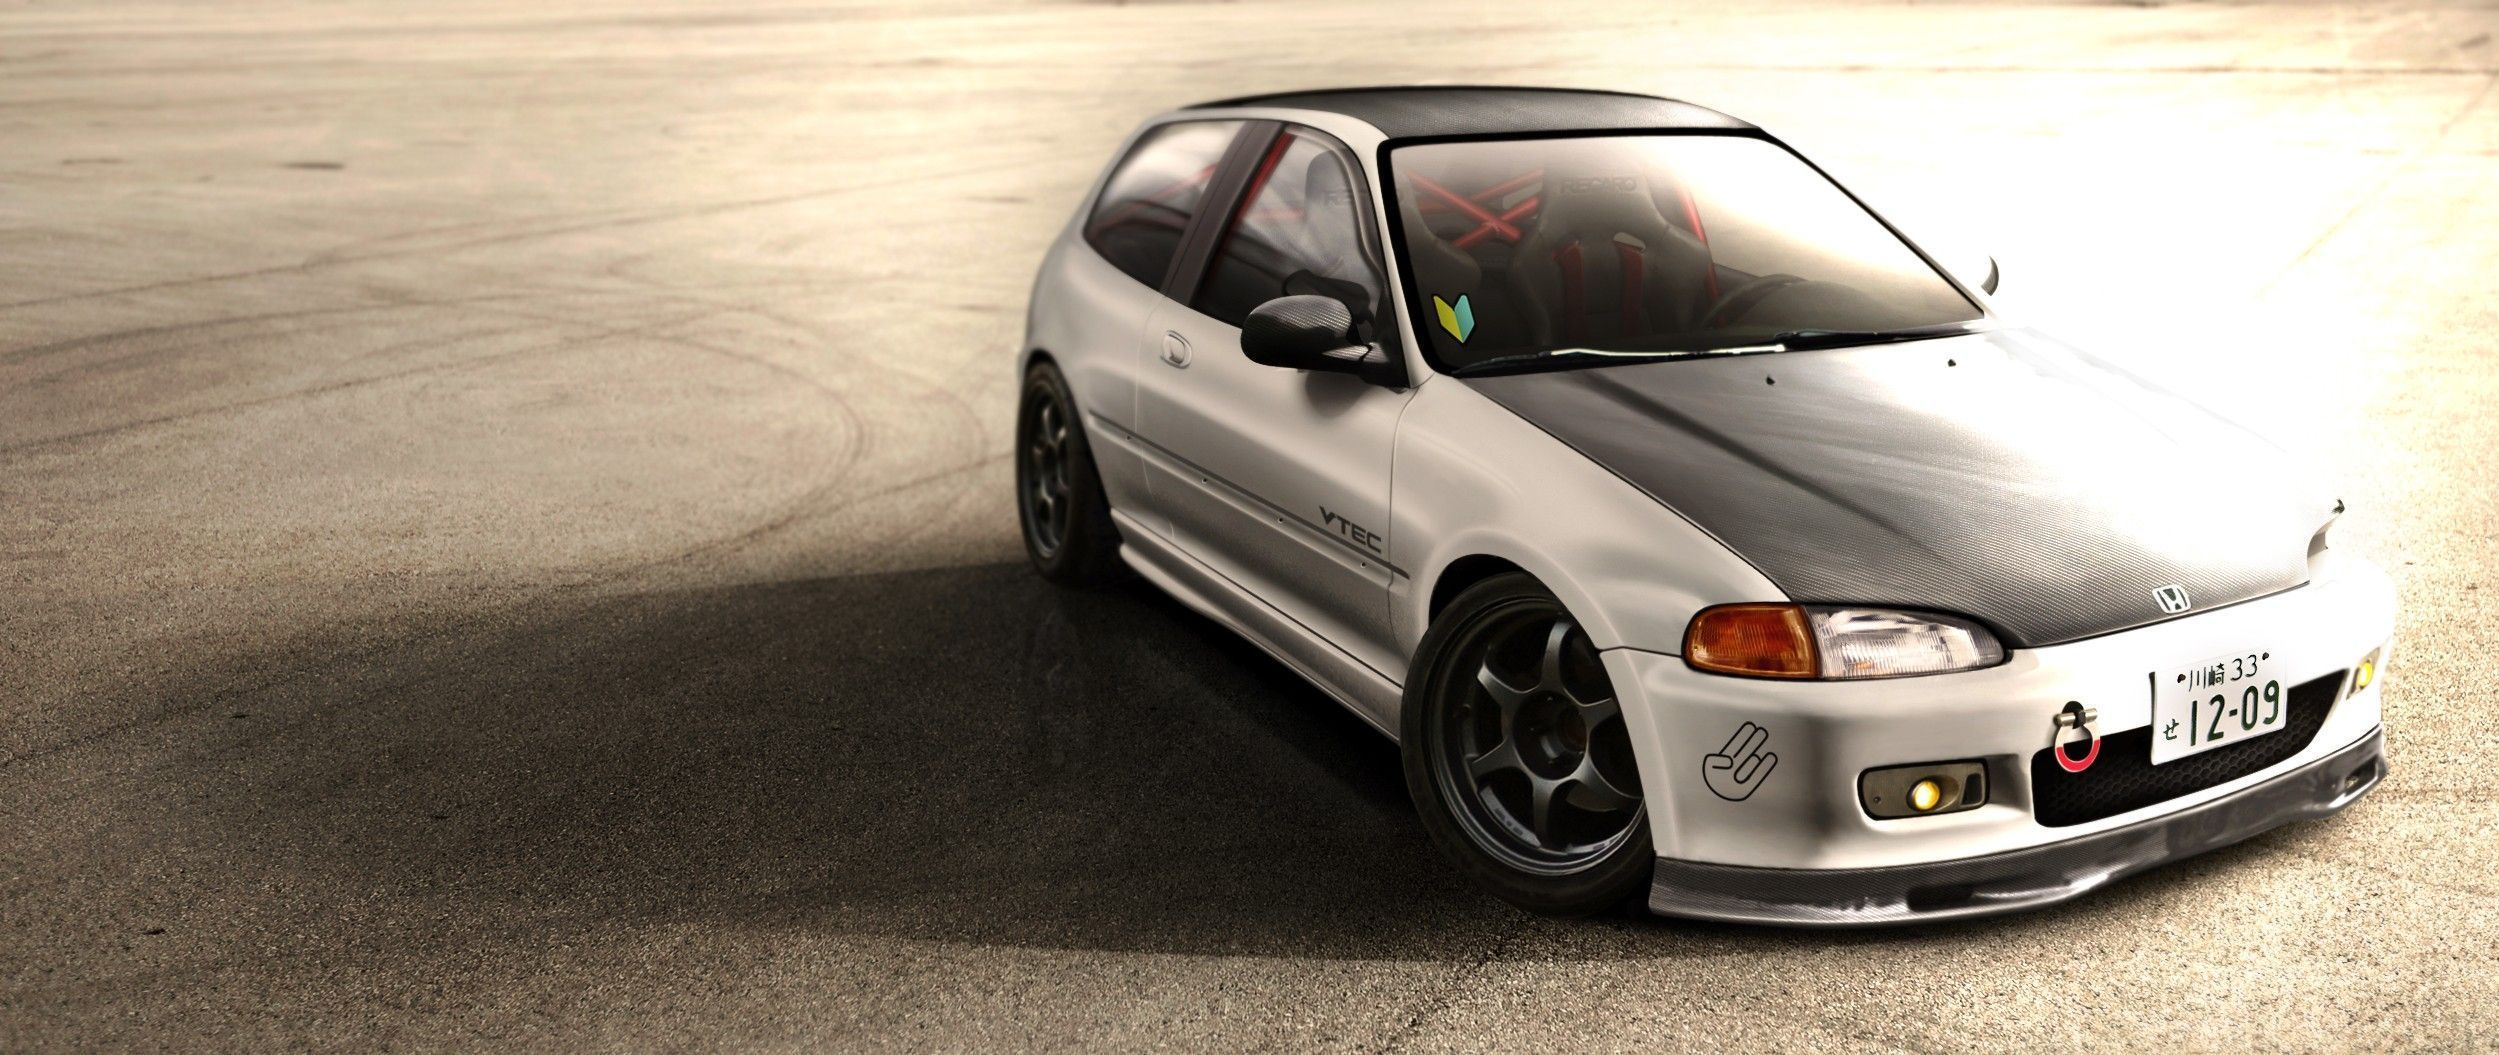 Honda, S2000, JDM, Stance, Gray, Car Wallpapers HD / Desktop and ...